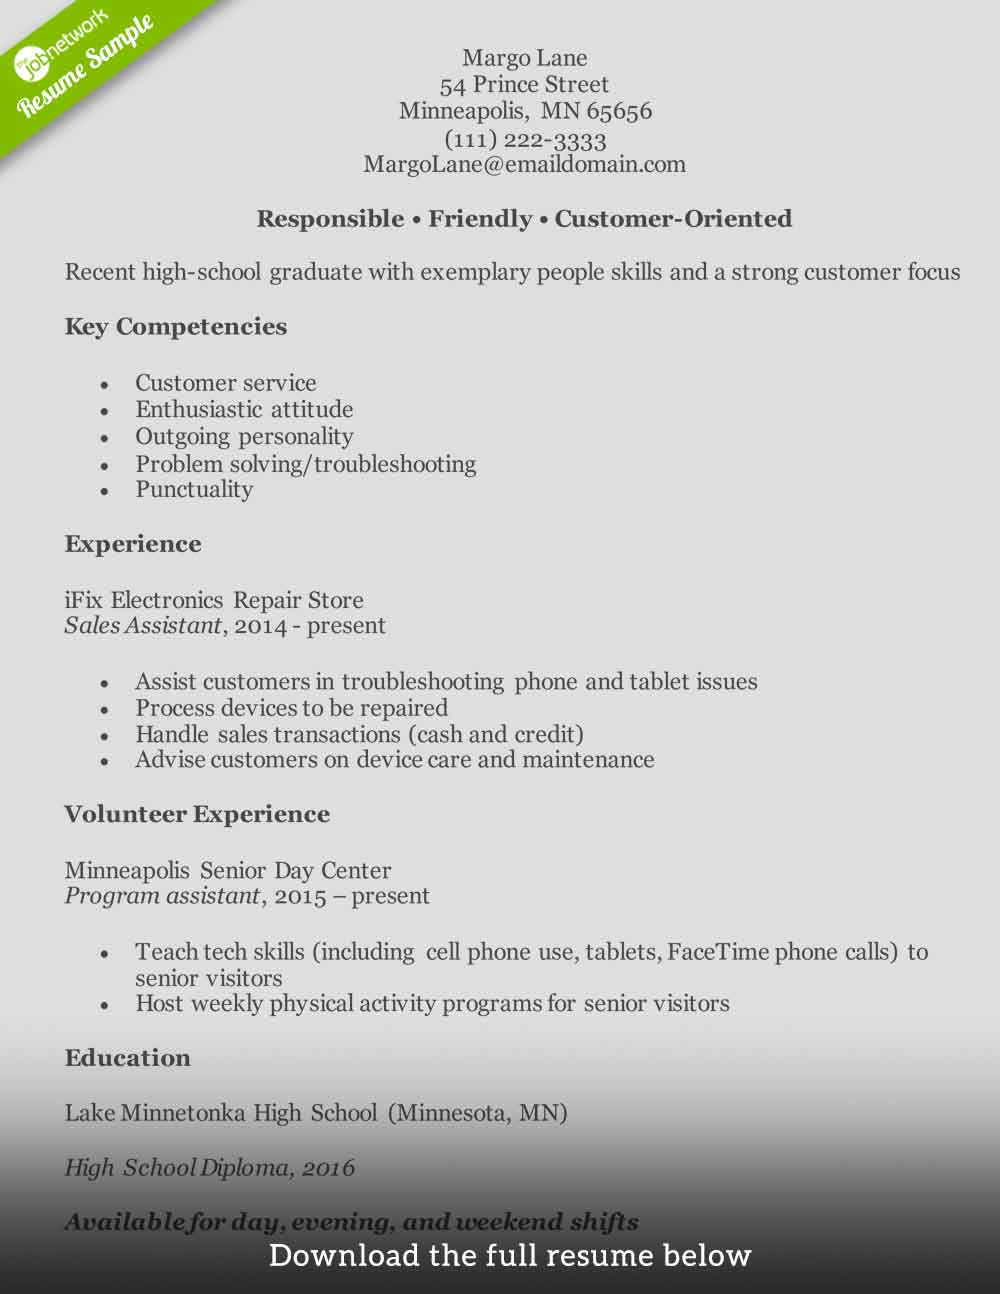 customer service resume to write the perfect one examples entry level level1 complete Resume Entry Level Customer Service Resume